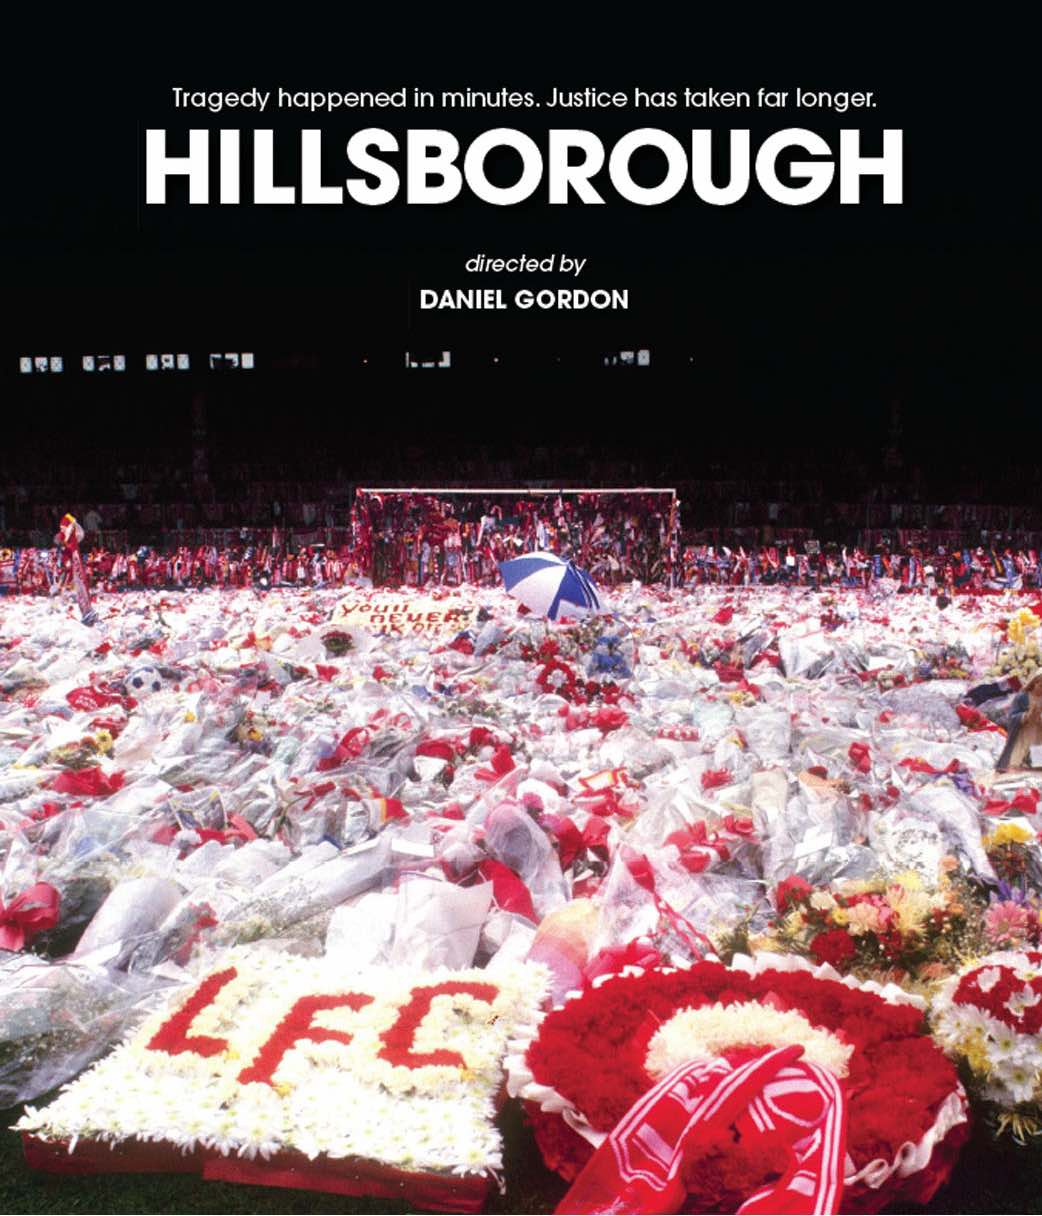 muslim singles in hillsborough Coverage of the hillsborough disaster the single biggest controversy during mackenzie's period as editor i think kelvin mackenzie is a raving lunatic.